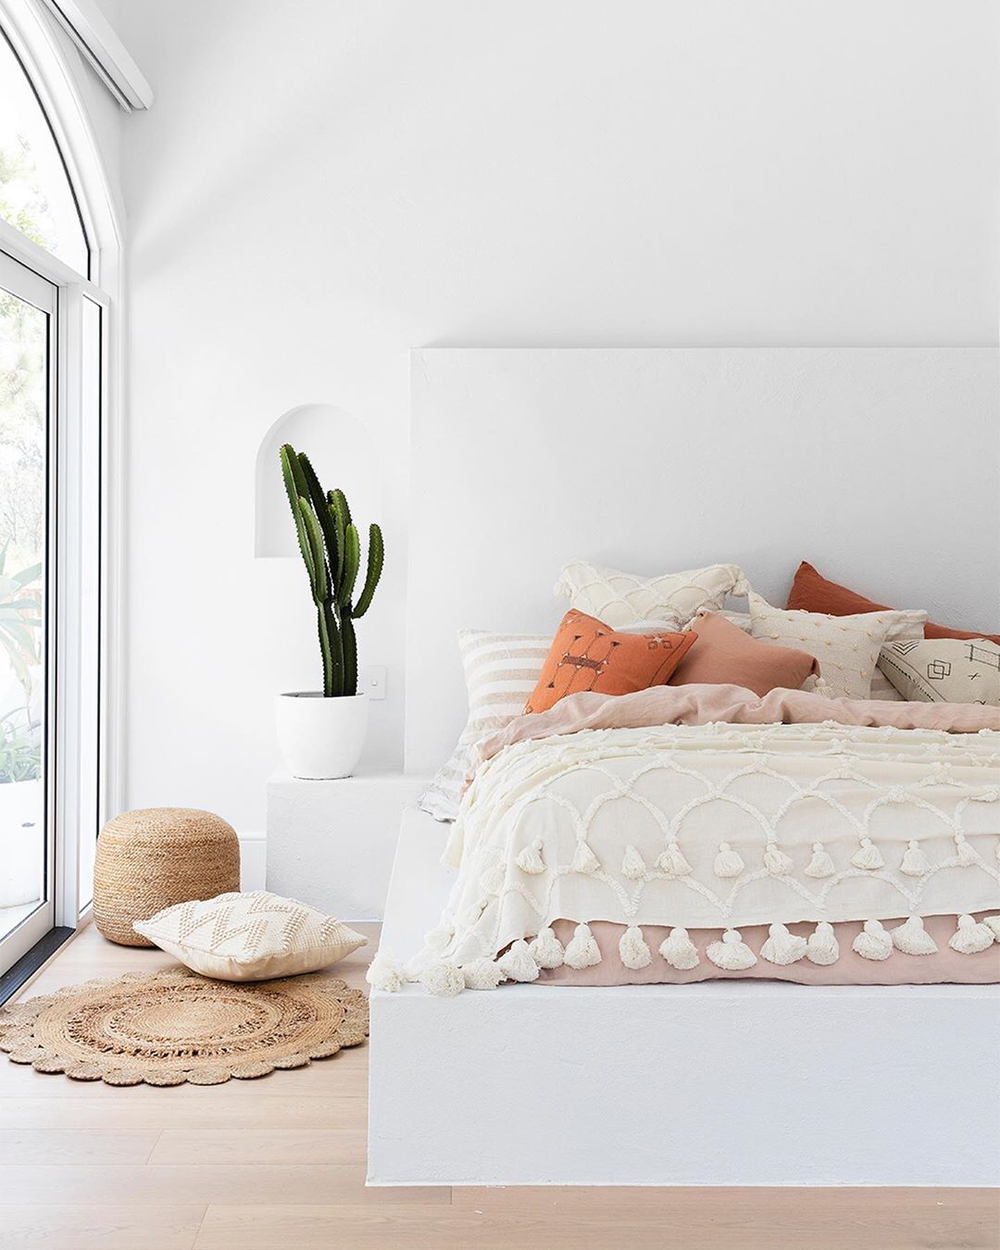 The List: 7 Of The Coolest Boho-Bedrooms I've found on ... on Modern Boho Bed Frame  id=50738